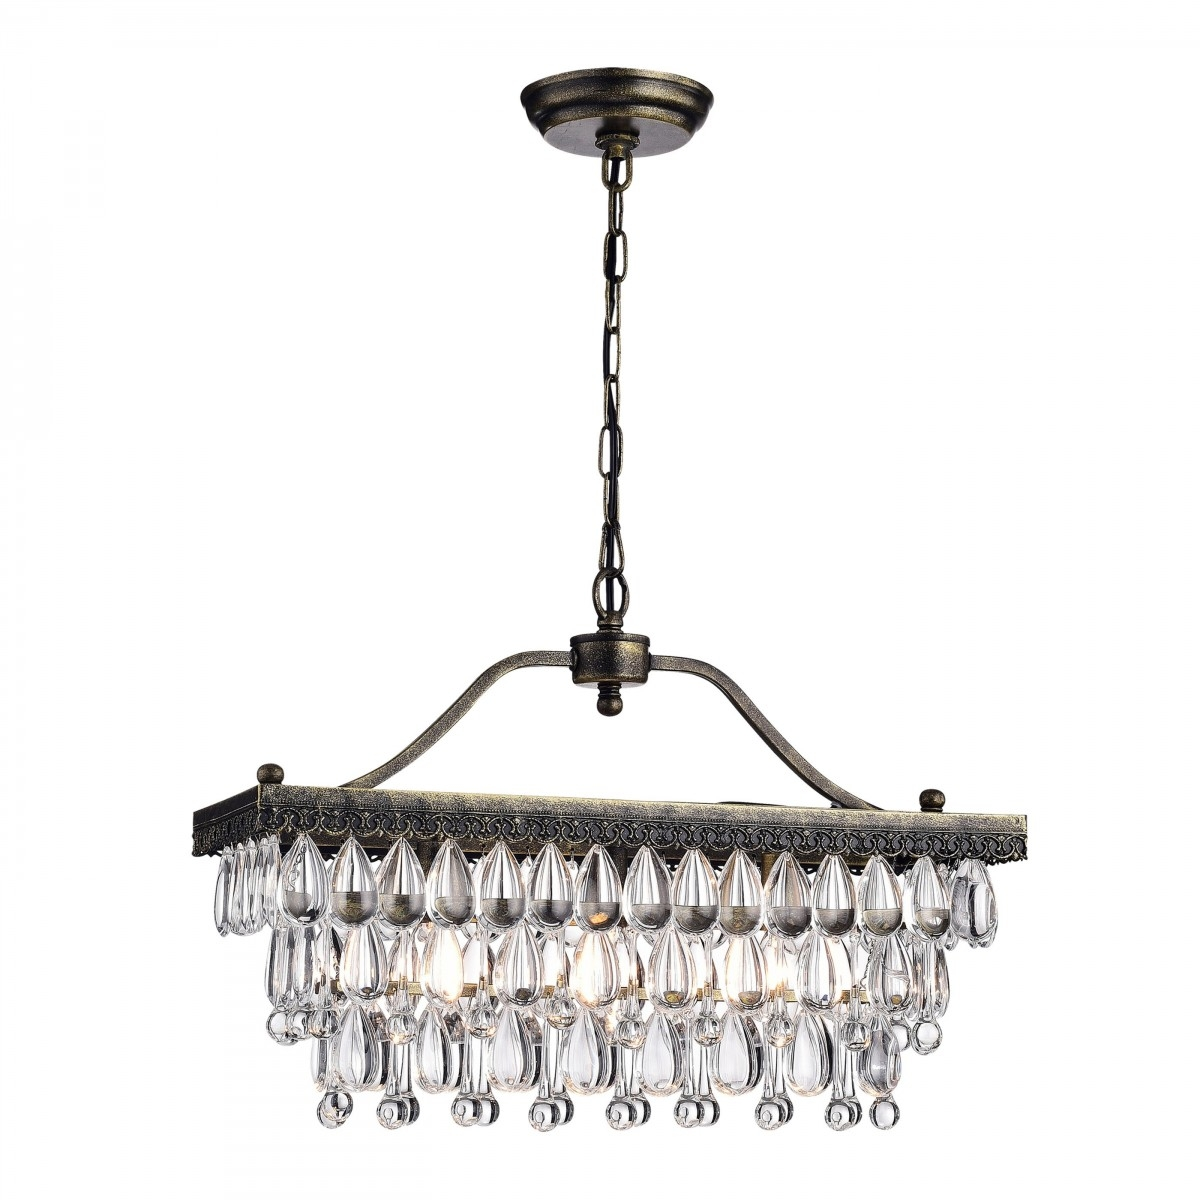 Sahara Astounding Luxury Crystal Glass 3 Light Antique Copper With Regard To Copper Chandeliers (Image 14 of 15)